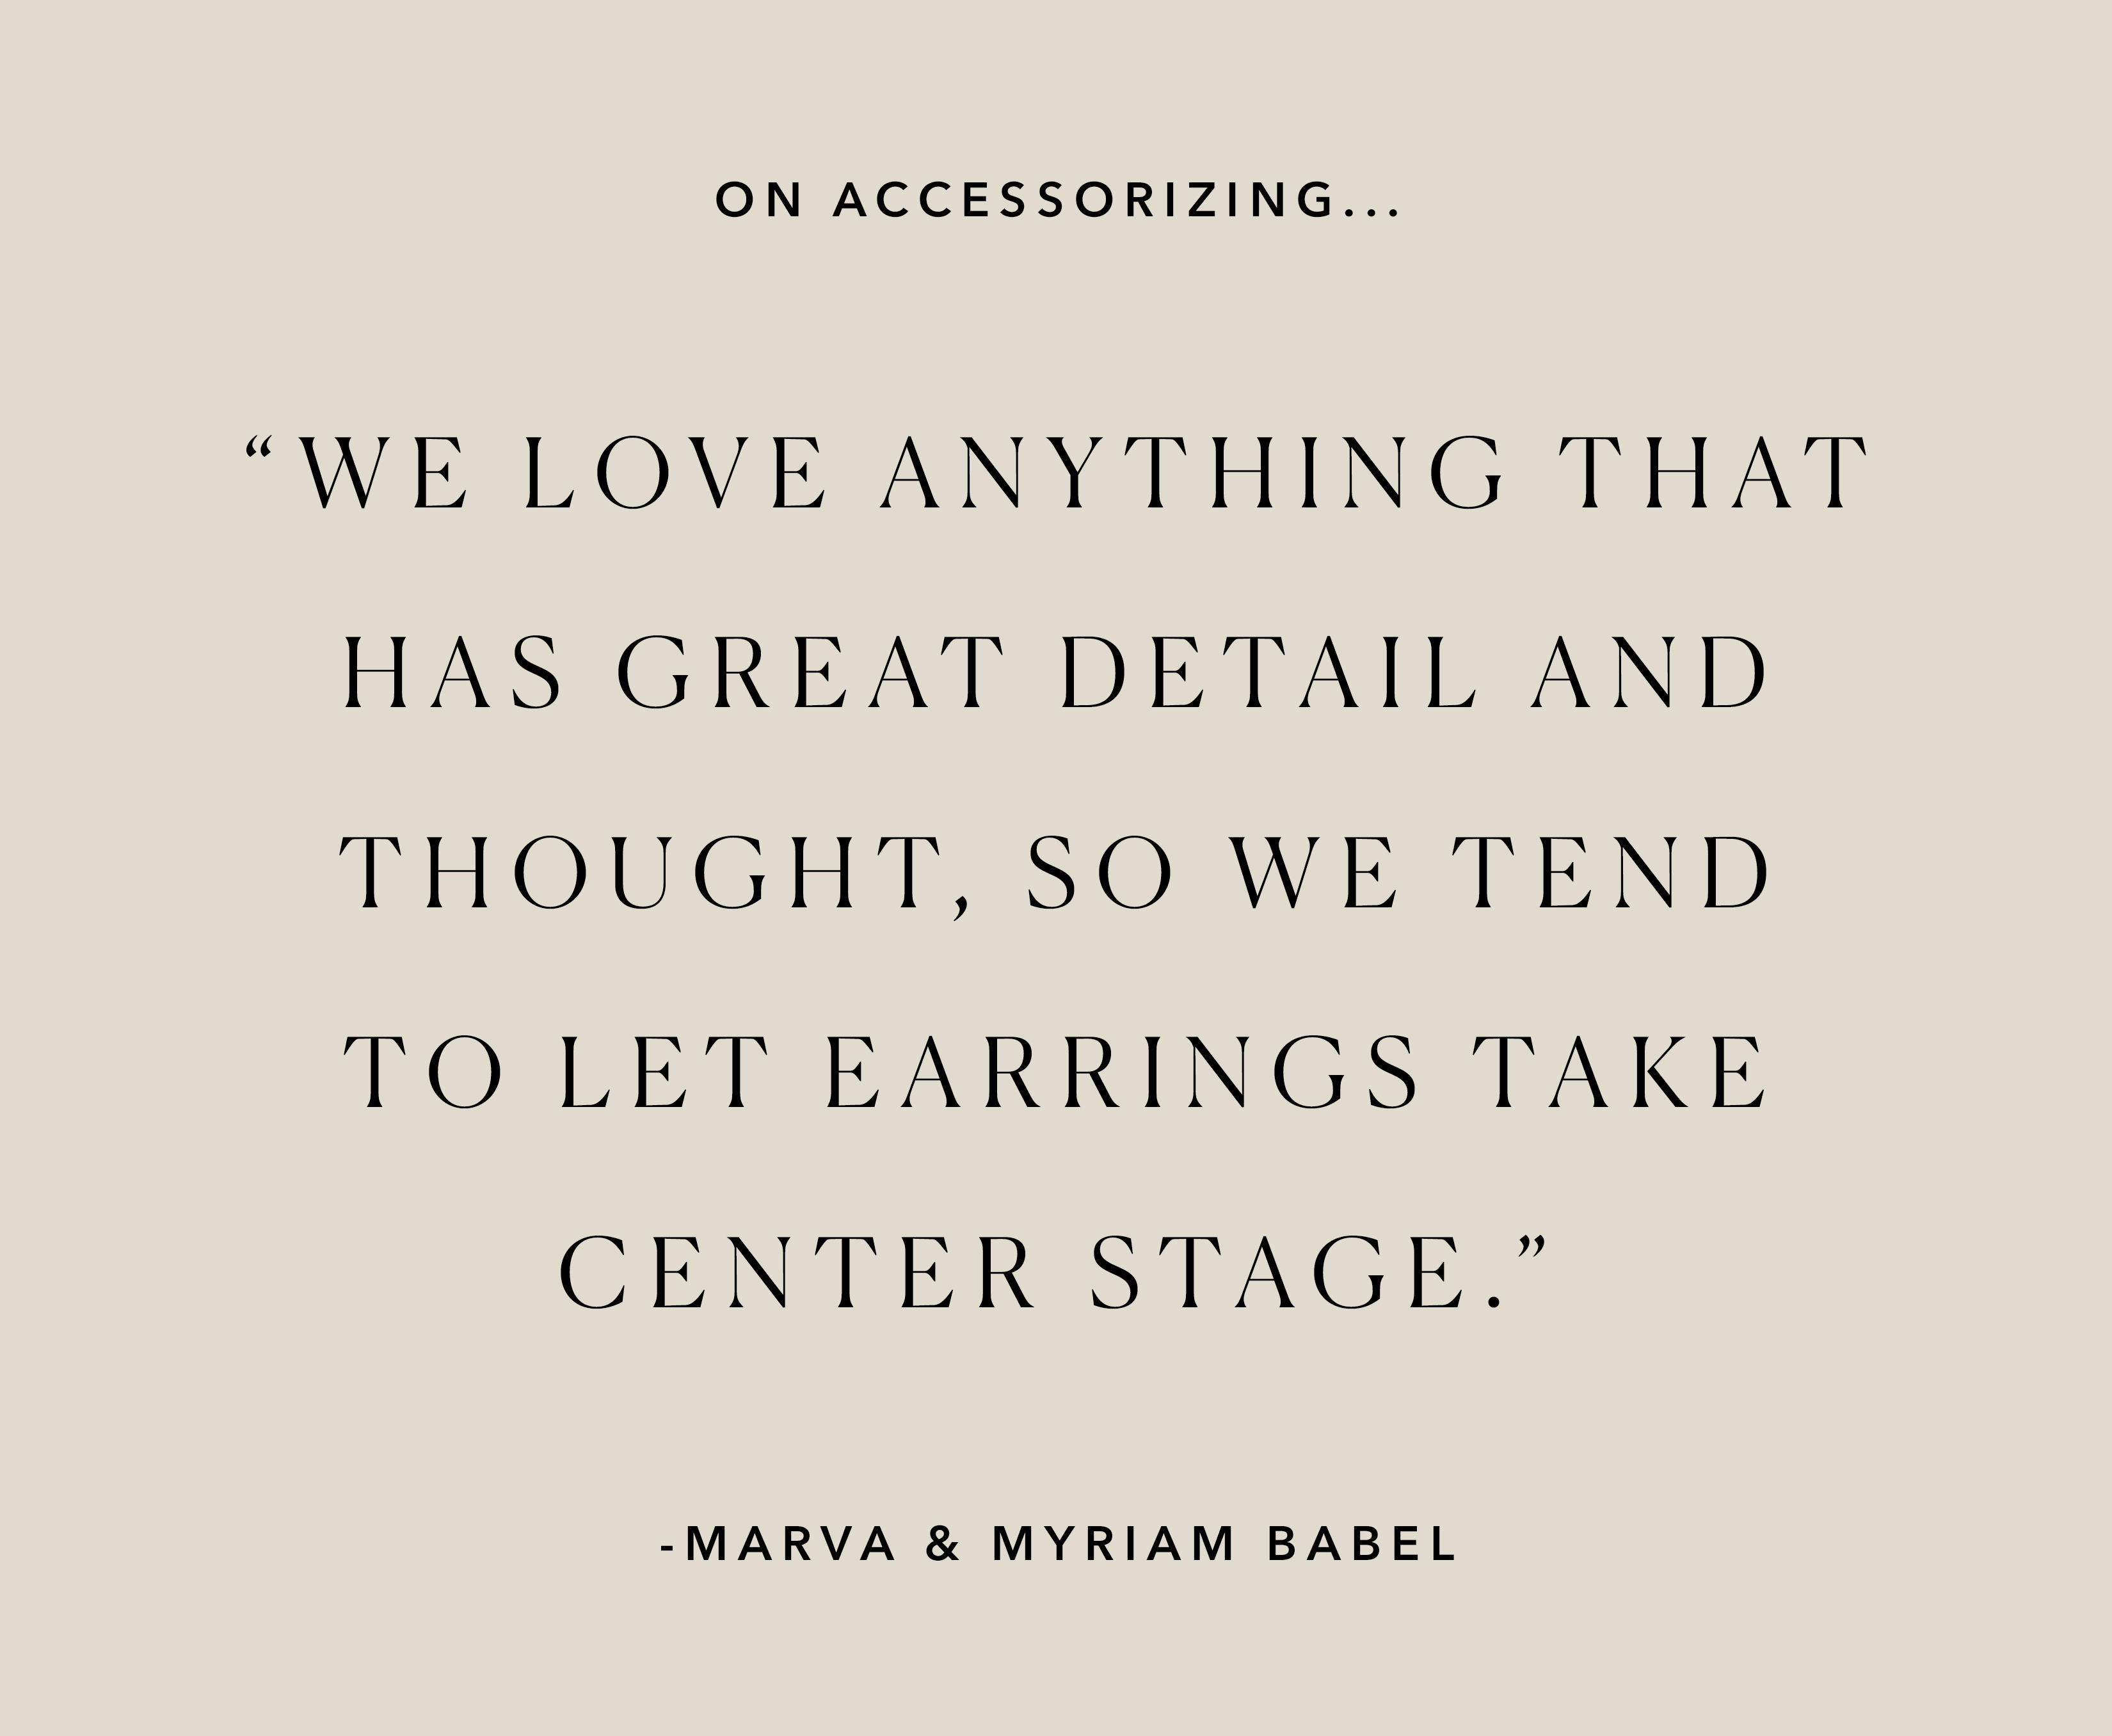 Friends For 10: Myriam and Marva Babel of Ode to Babel 4